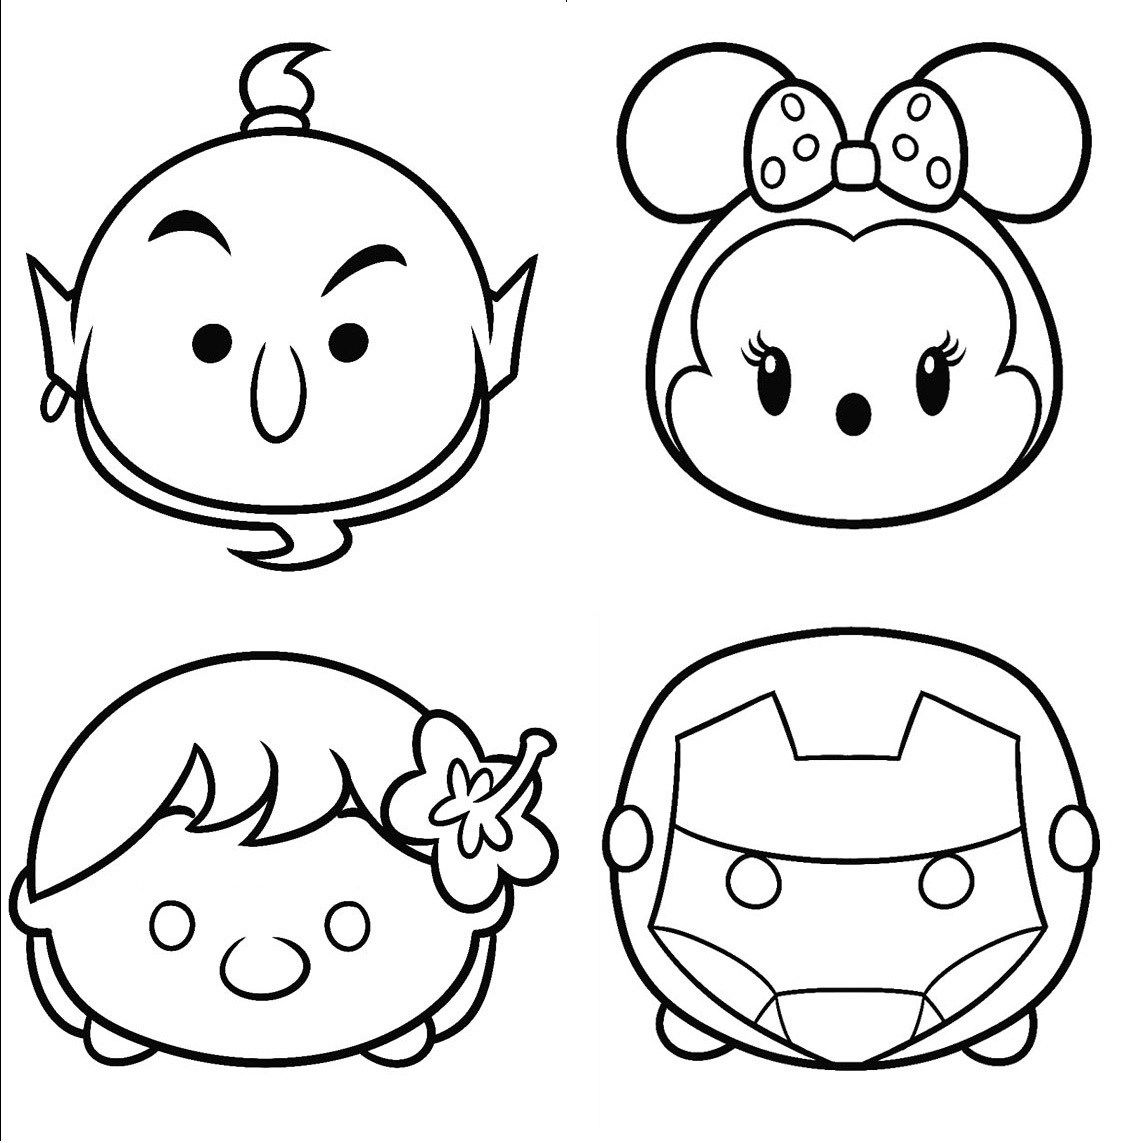 Printable Disney Tsum Tsum Coloring Sheet For Kids Tsum Tsum Coloring Pages Disney Coloring Pages Coloring Pages